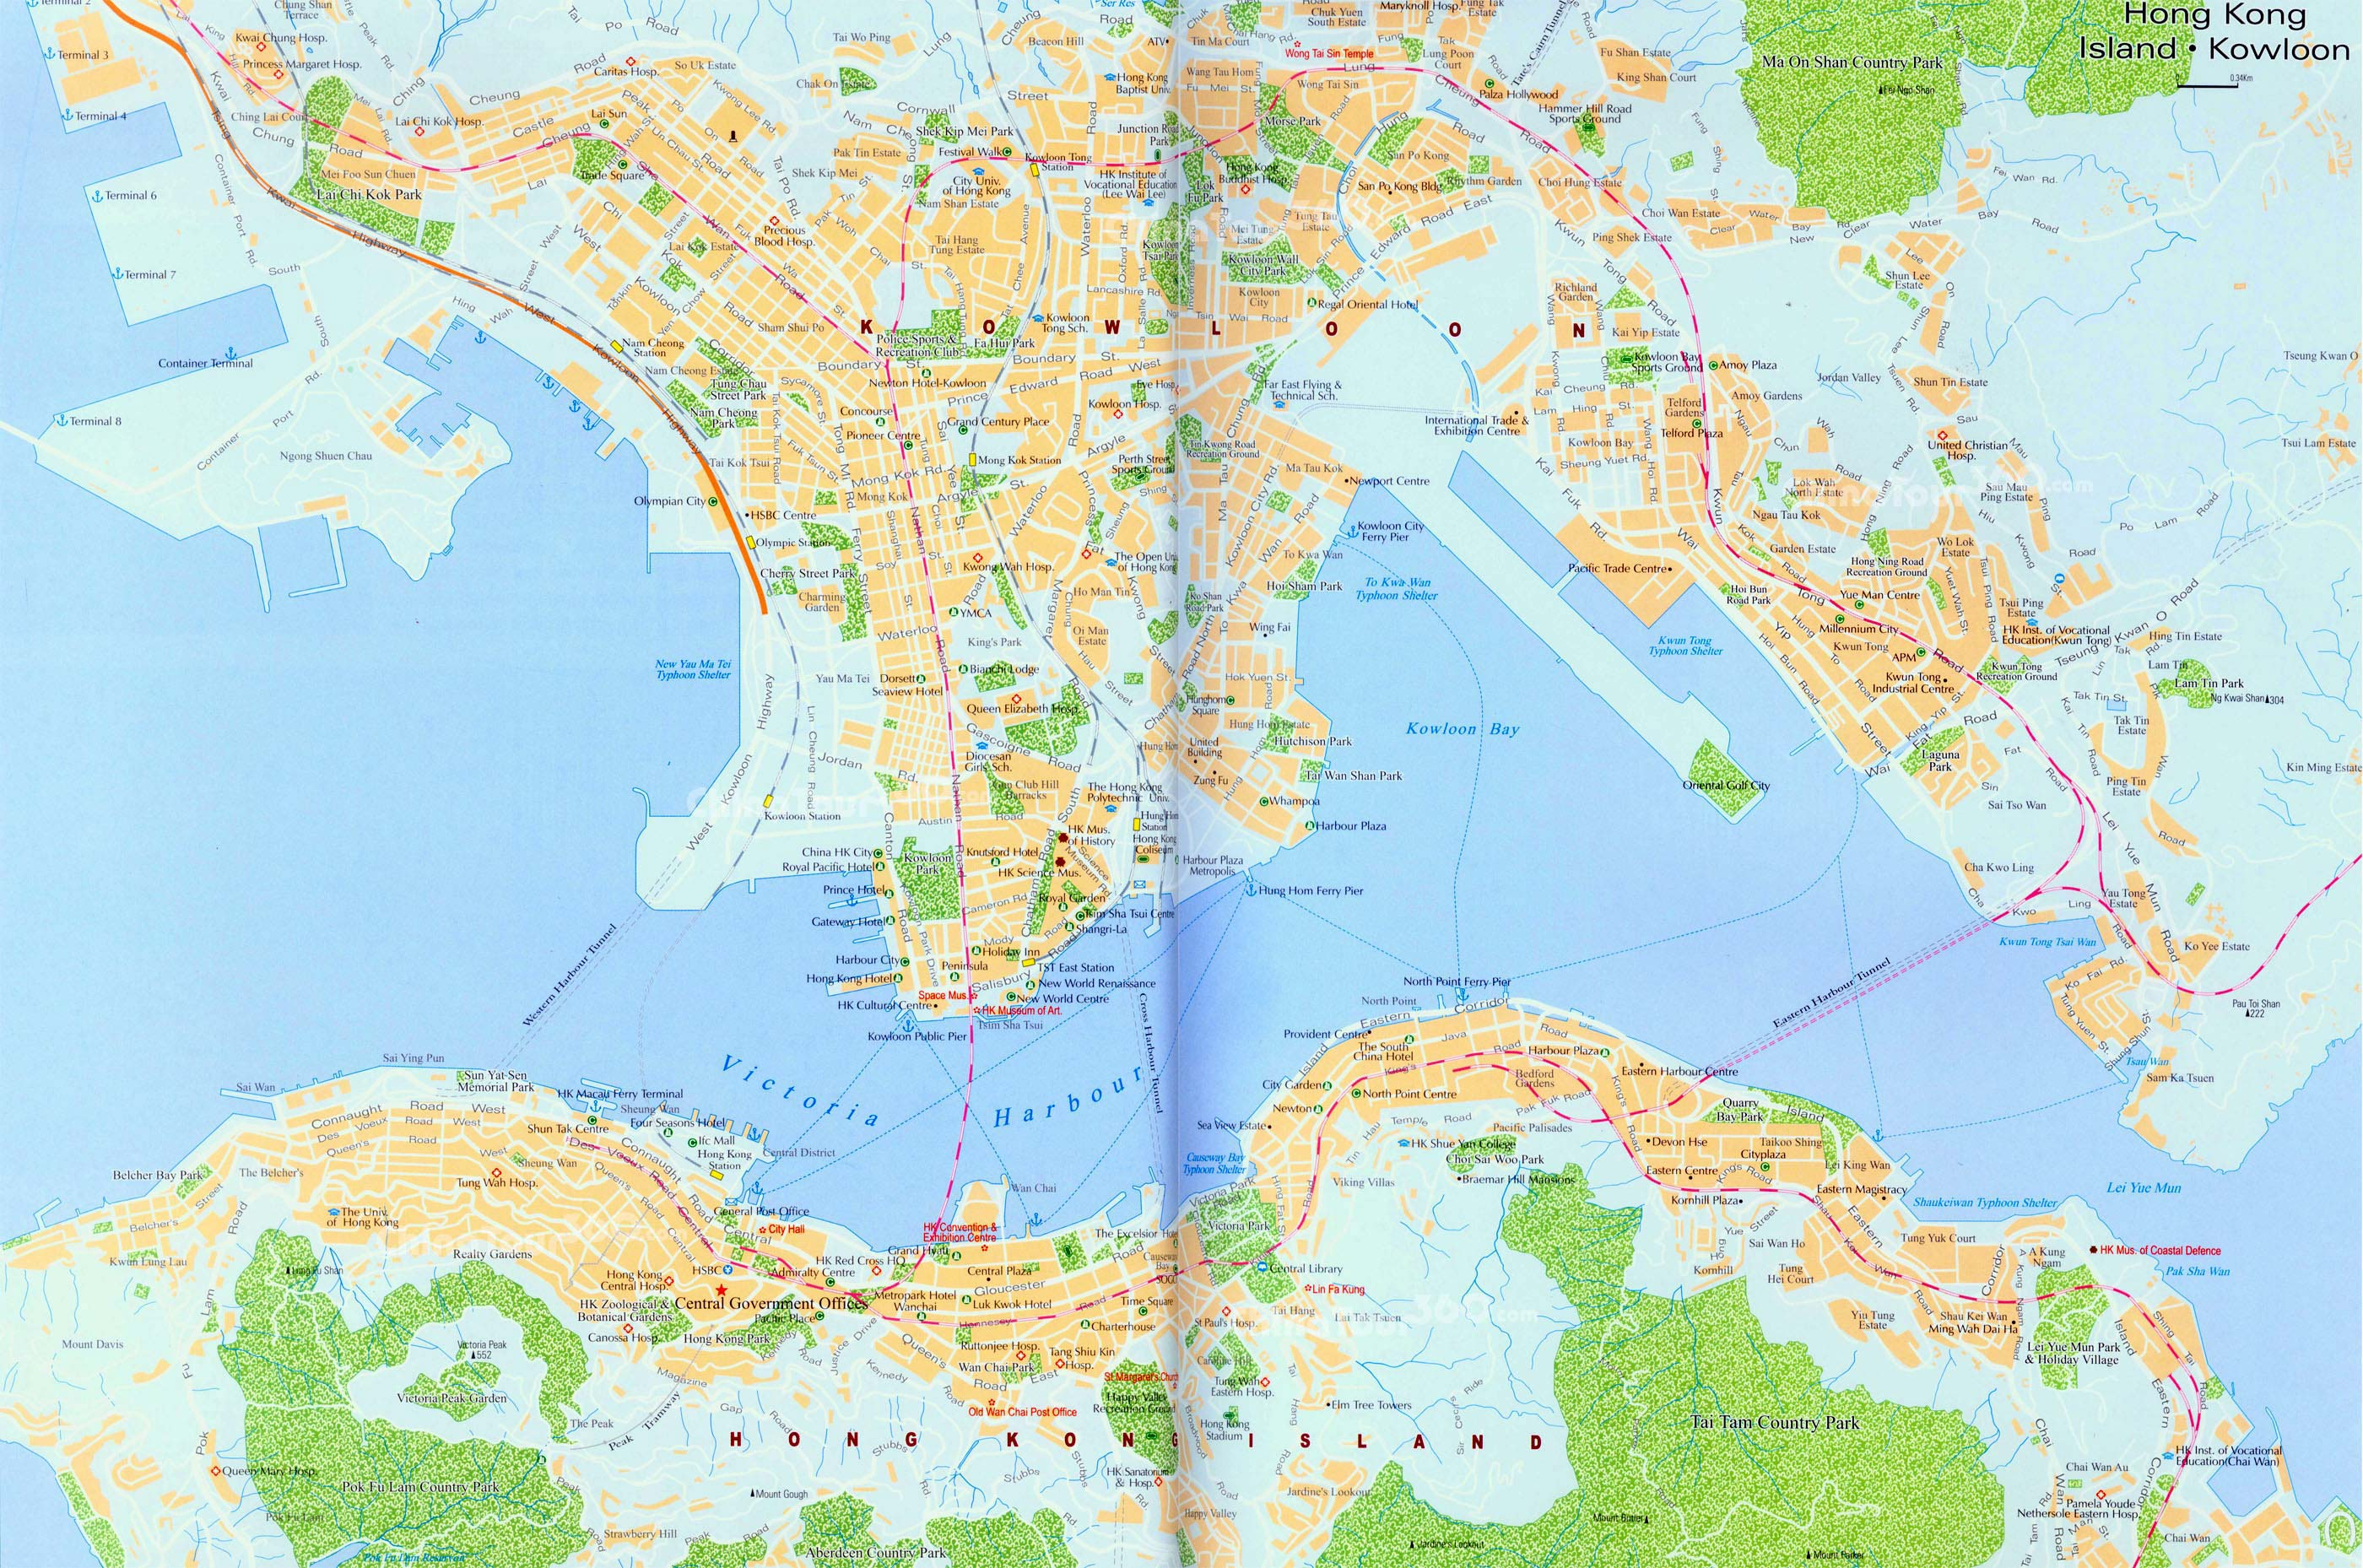 Hong Kong Map City – Hong Kong Map For Tourist